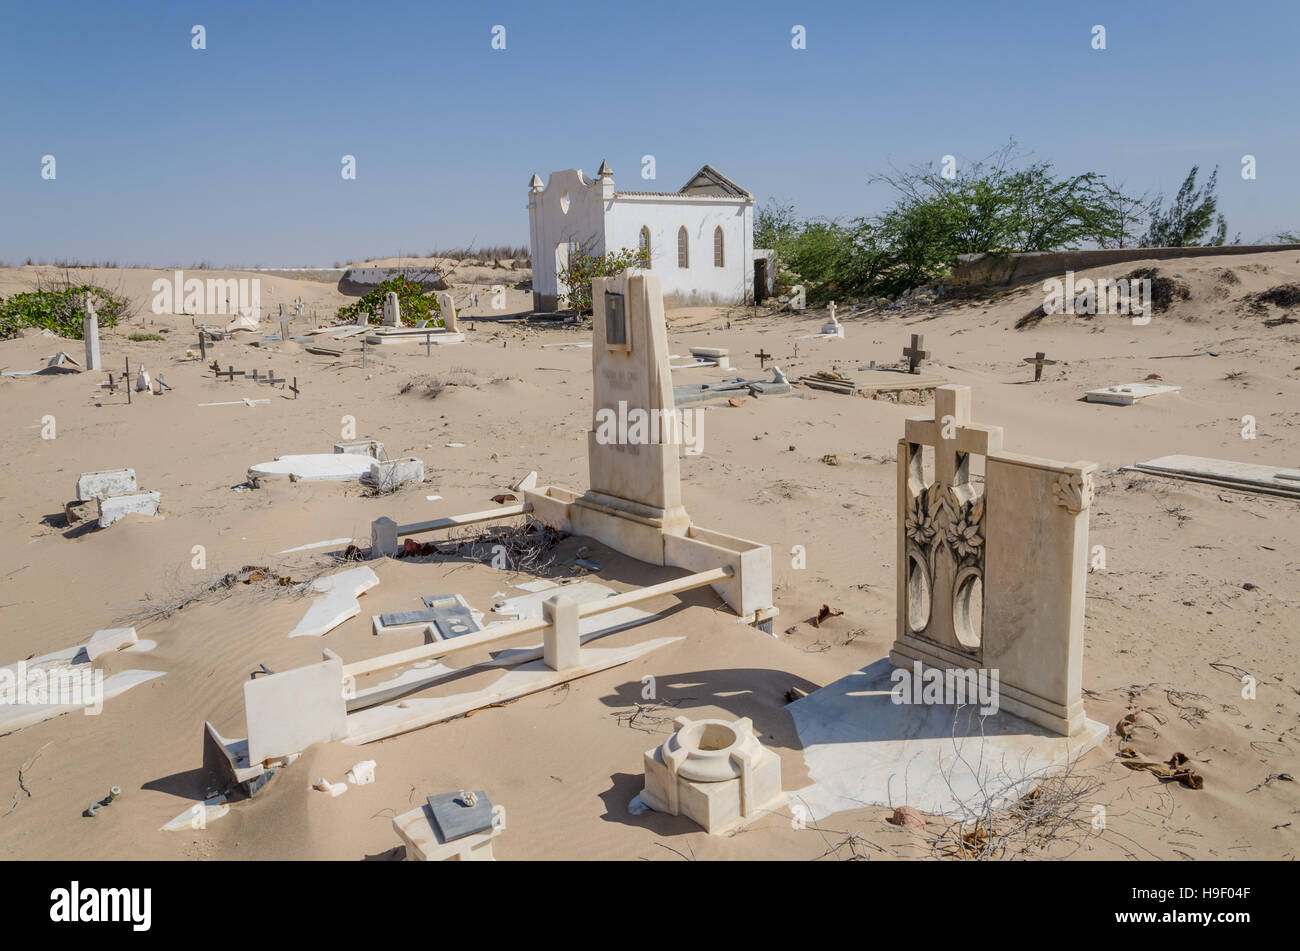 Abandoned graveyard with crumbling stones and crosses in Namib Desert of Angola - Stock Image